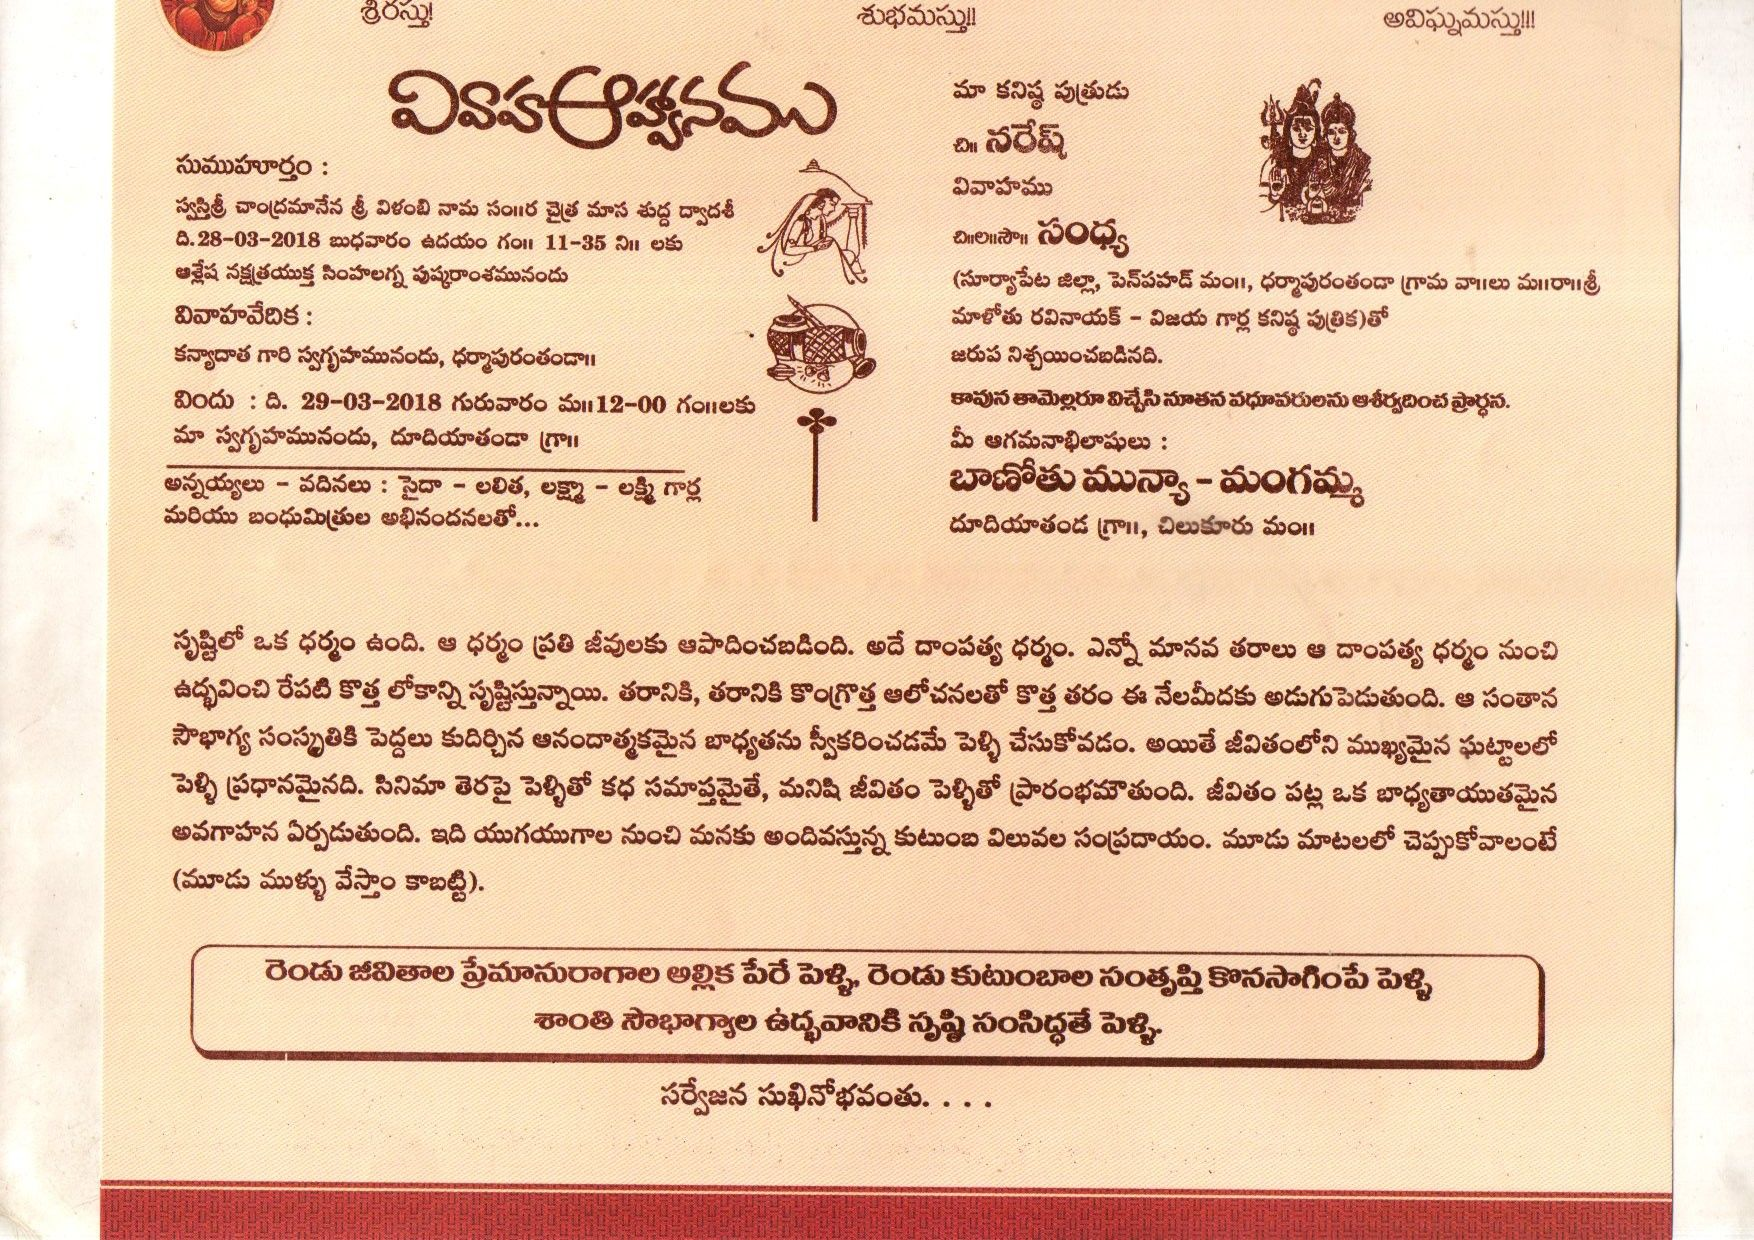 Telugu Wedding Card Matter About Telugu Marriage Meaning